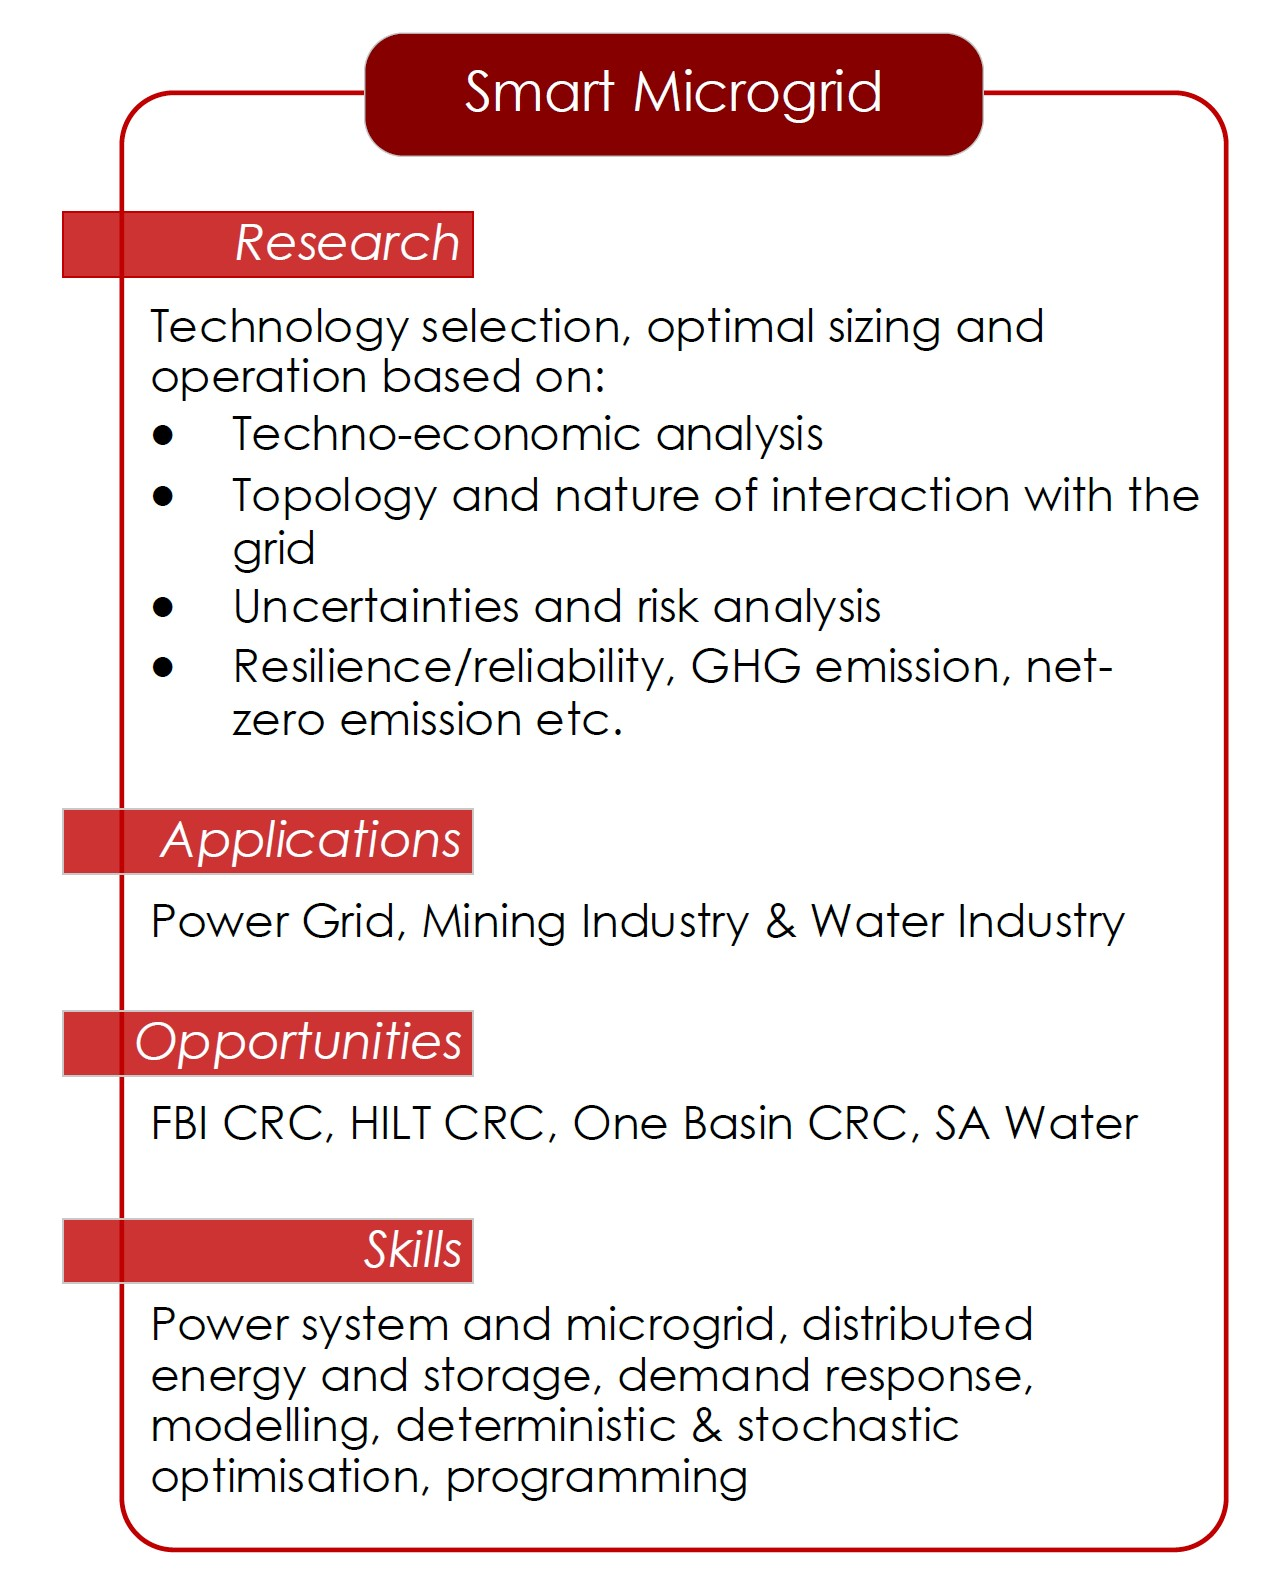 Research on Microgrid